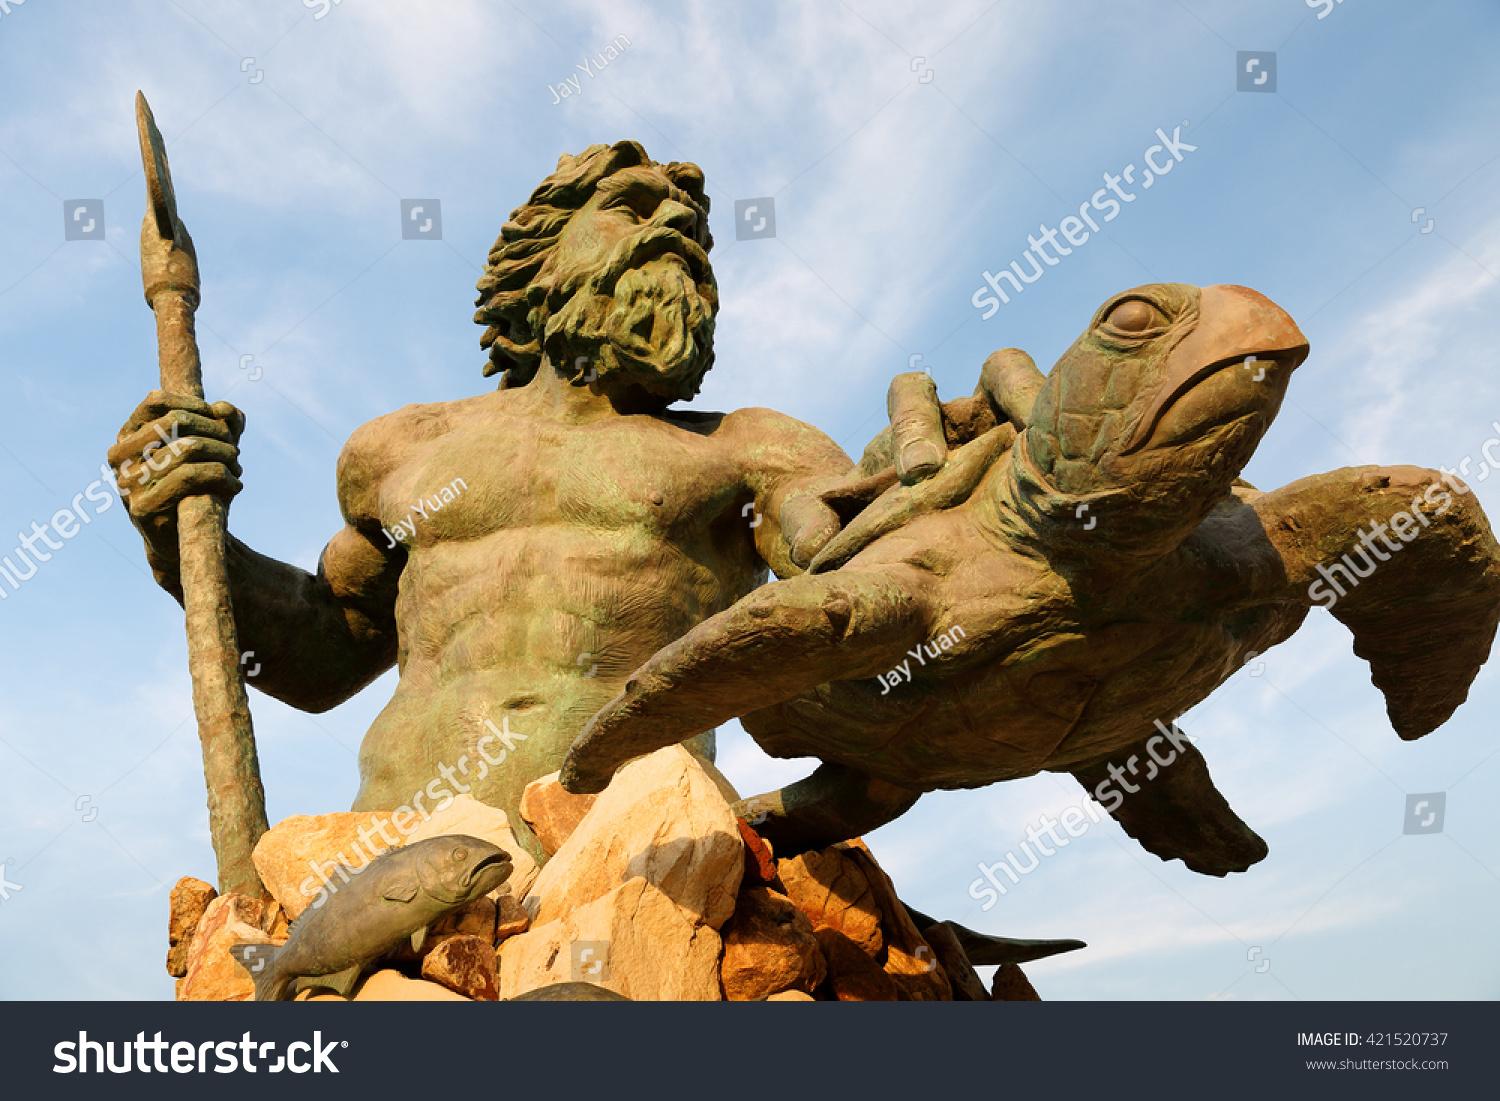 Virginia Beach Virginia April 20 2016 The King Neptune Statue at Virginia Beach Before Sunset King Neptune is a large bronze statue sculpted located in Virginia Beach Virginia